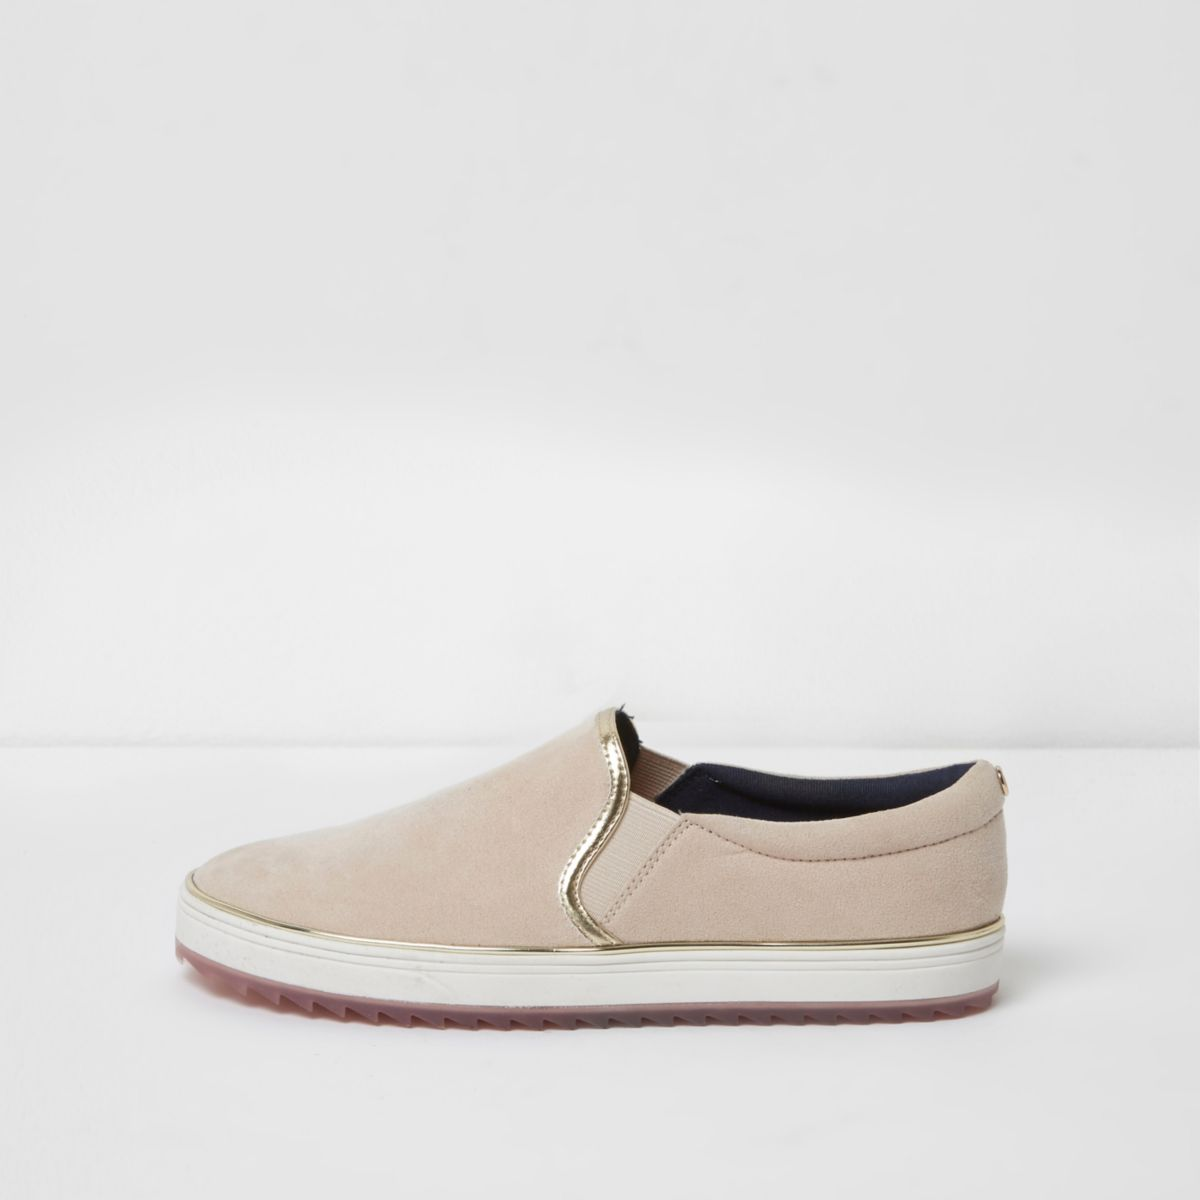 Womens Light Brown slip on plimsolls River Island sPEf5BaPn